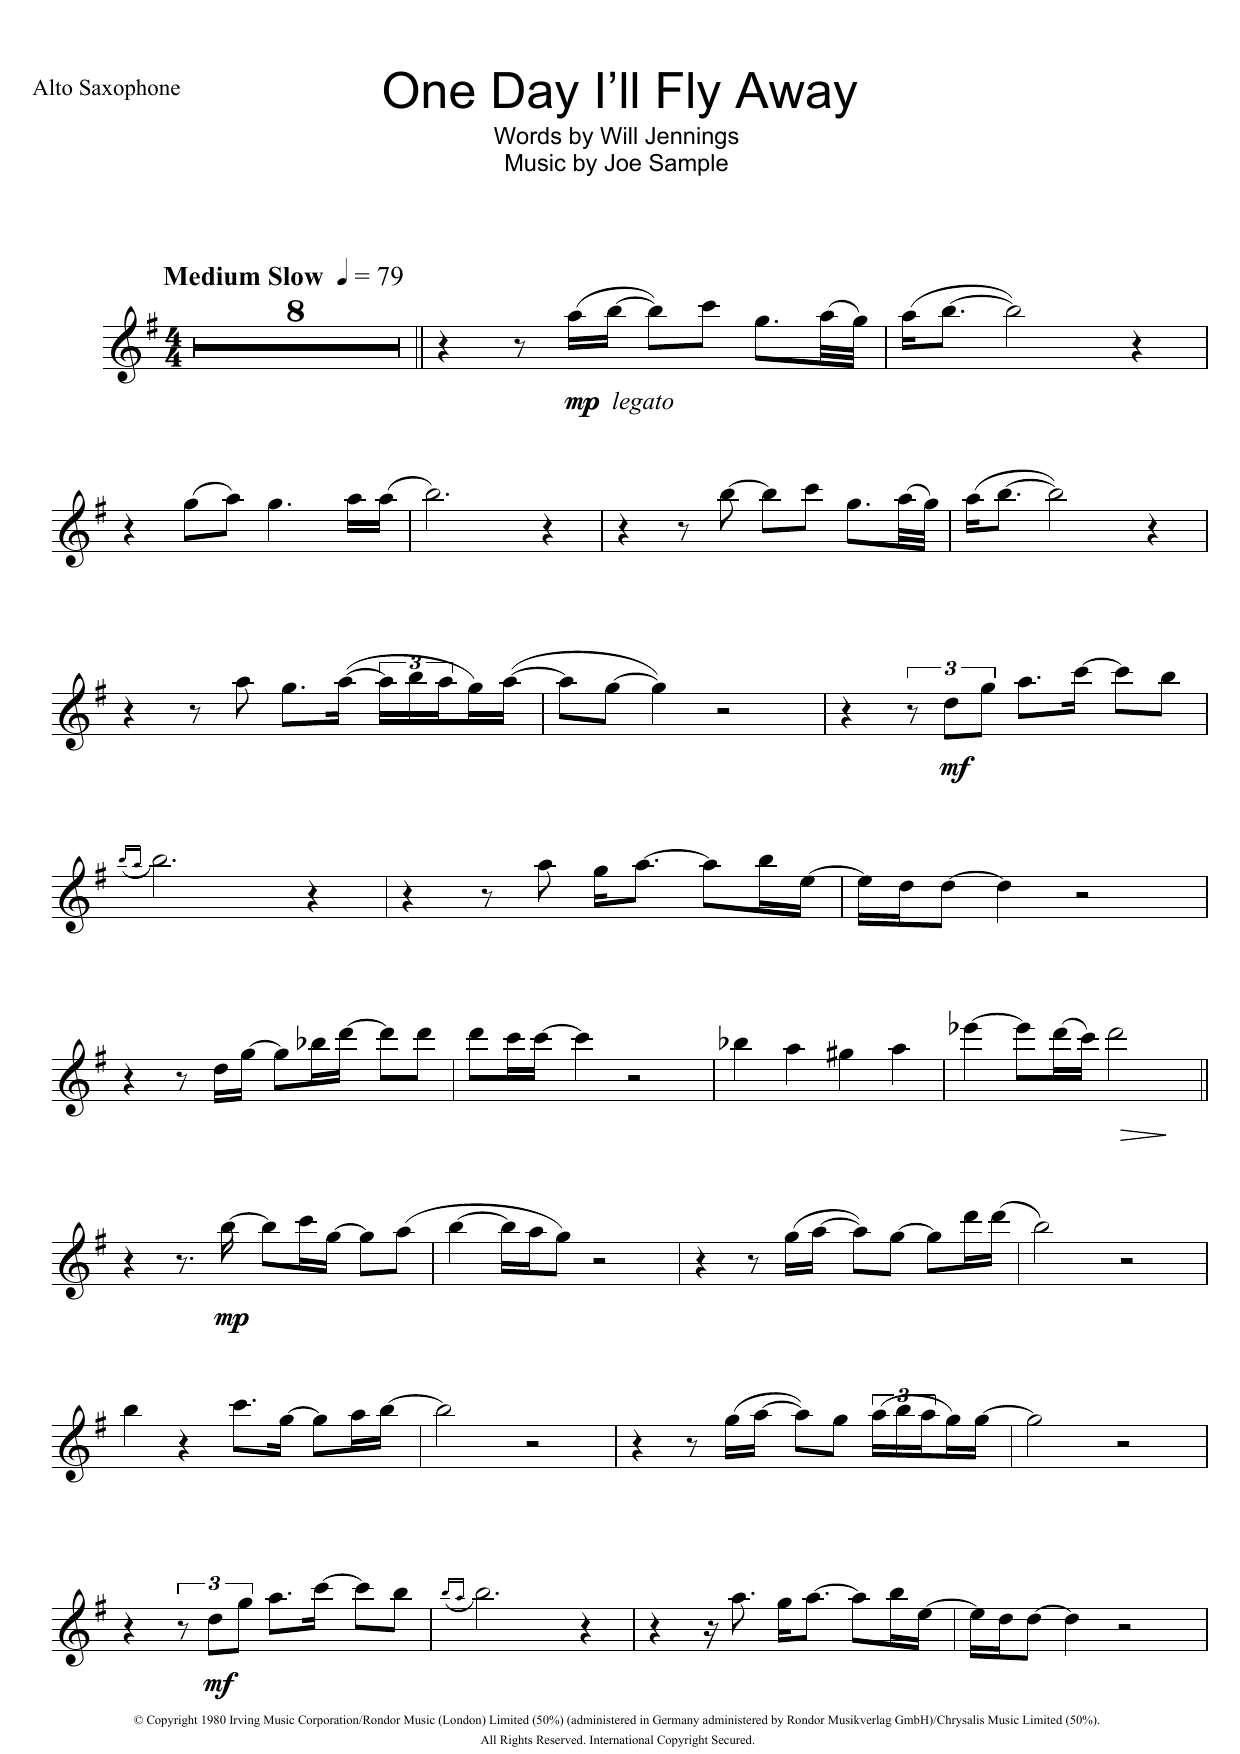 One day ill fly away sheet music direct one day ill fly away hexwebz Image collections